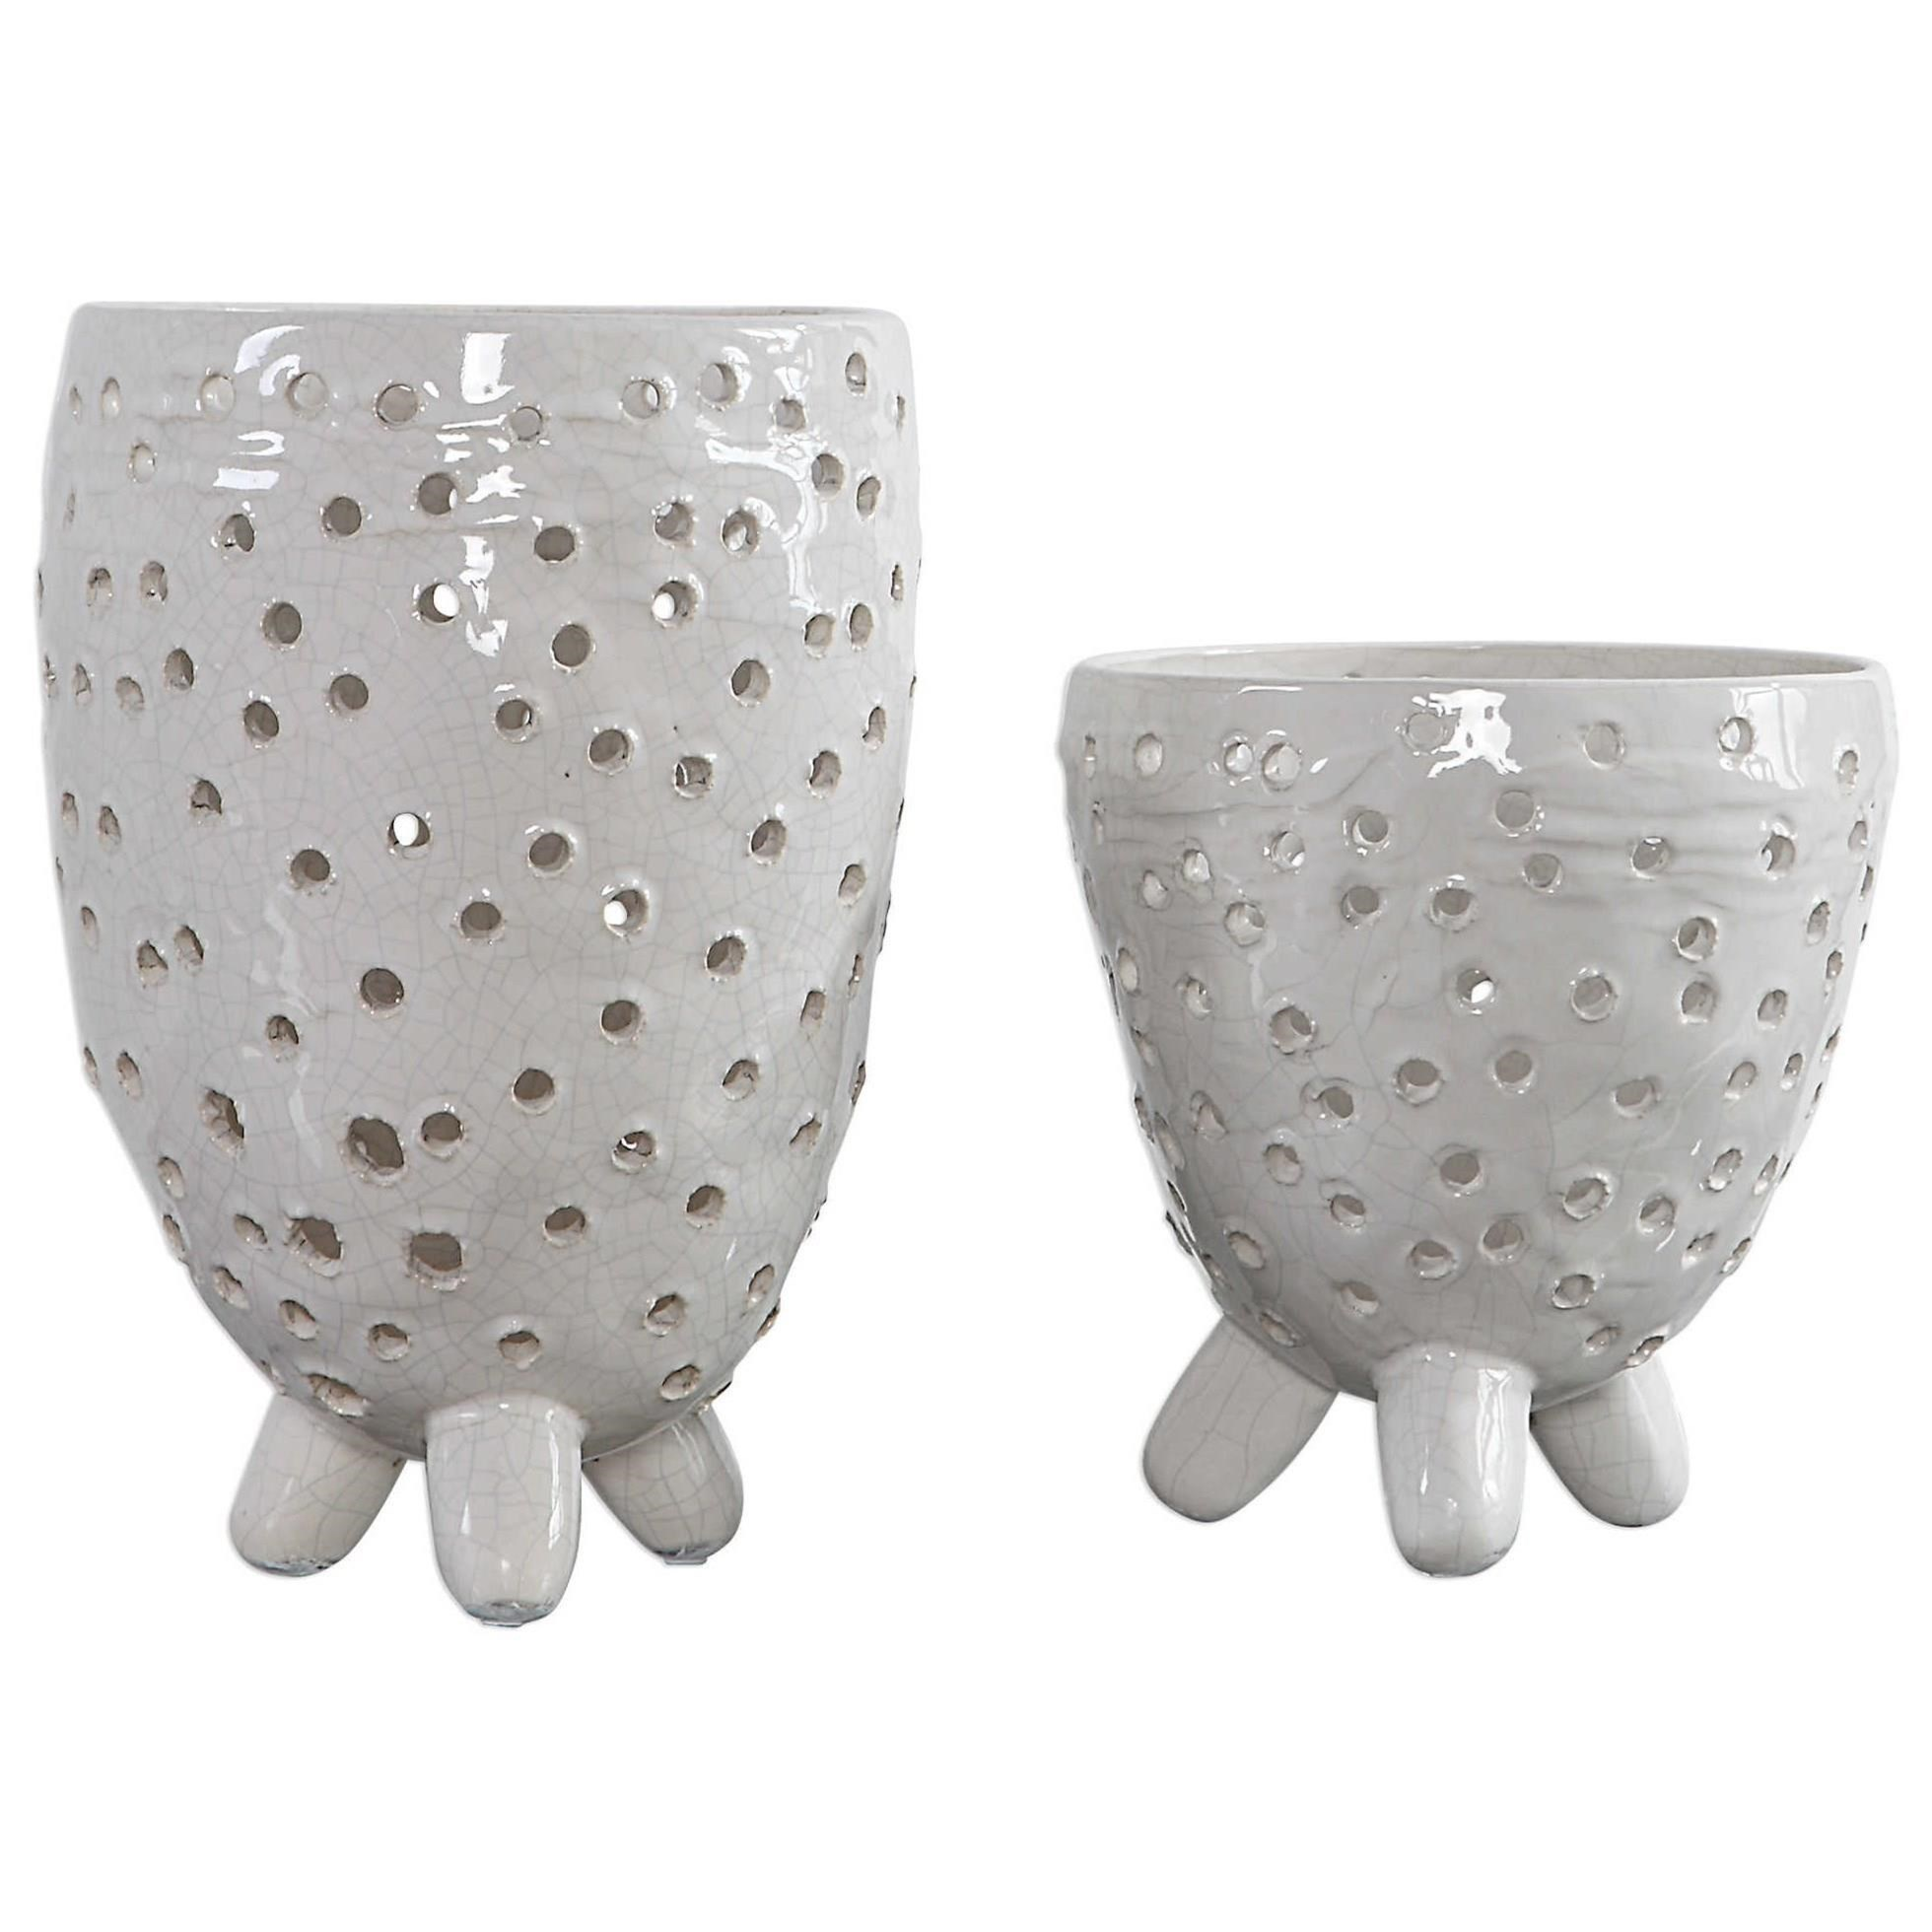 Accessories - Vases and Urns Milla Mid-Century Modern Vases, S/2 by Uttermost at Mueller Furniture